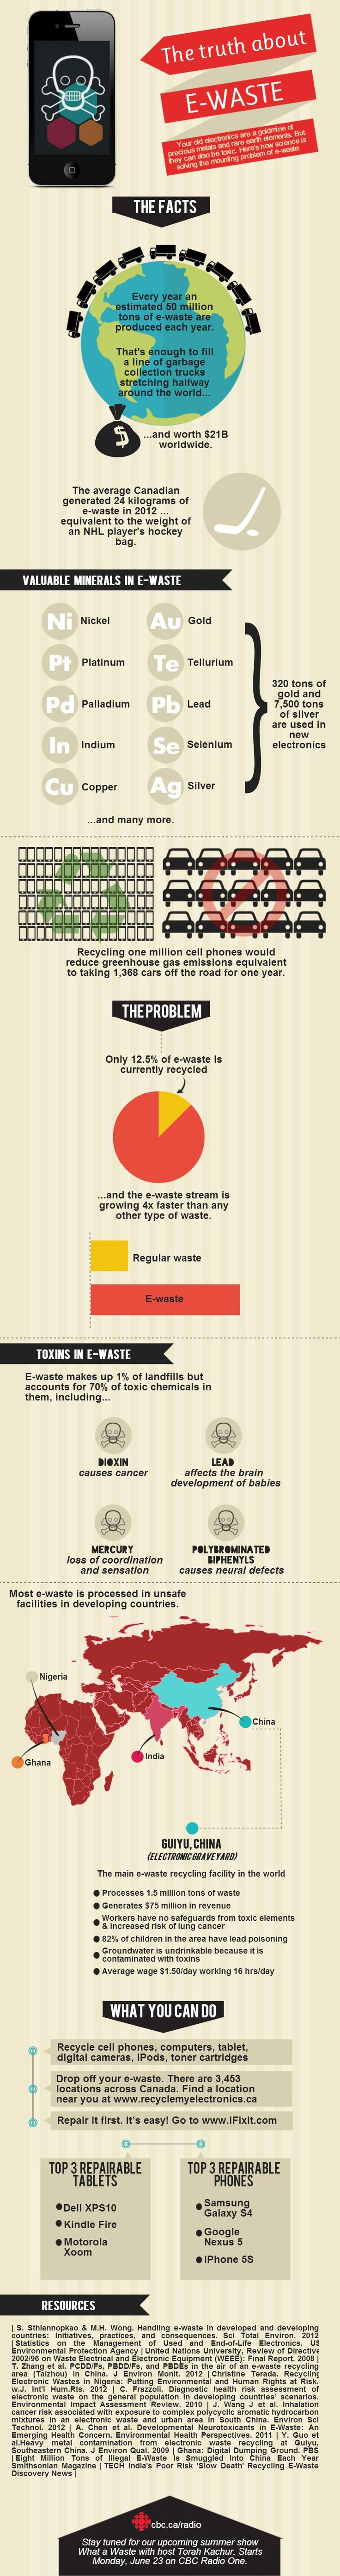 The state of #ewaste recycling in #canada   #infographic